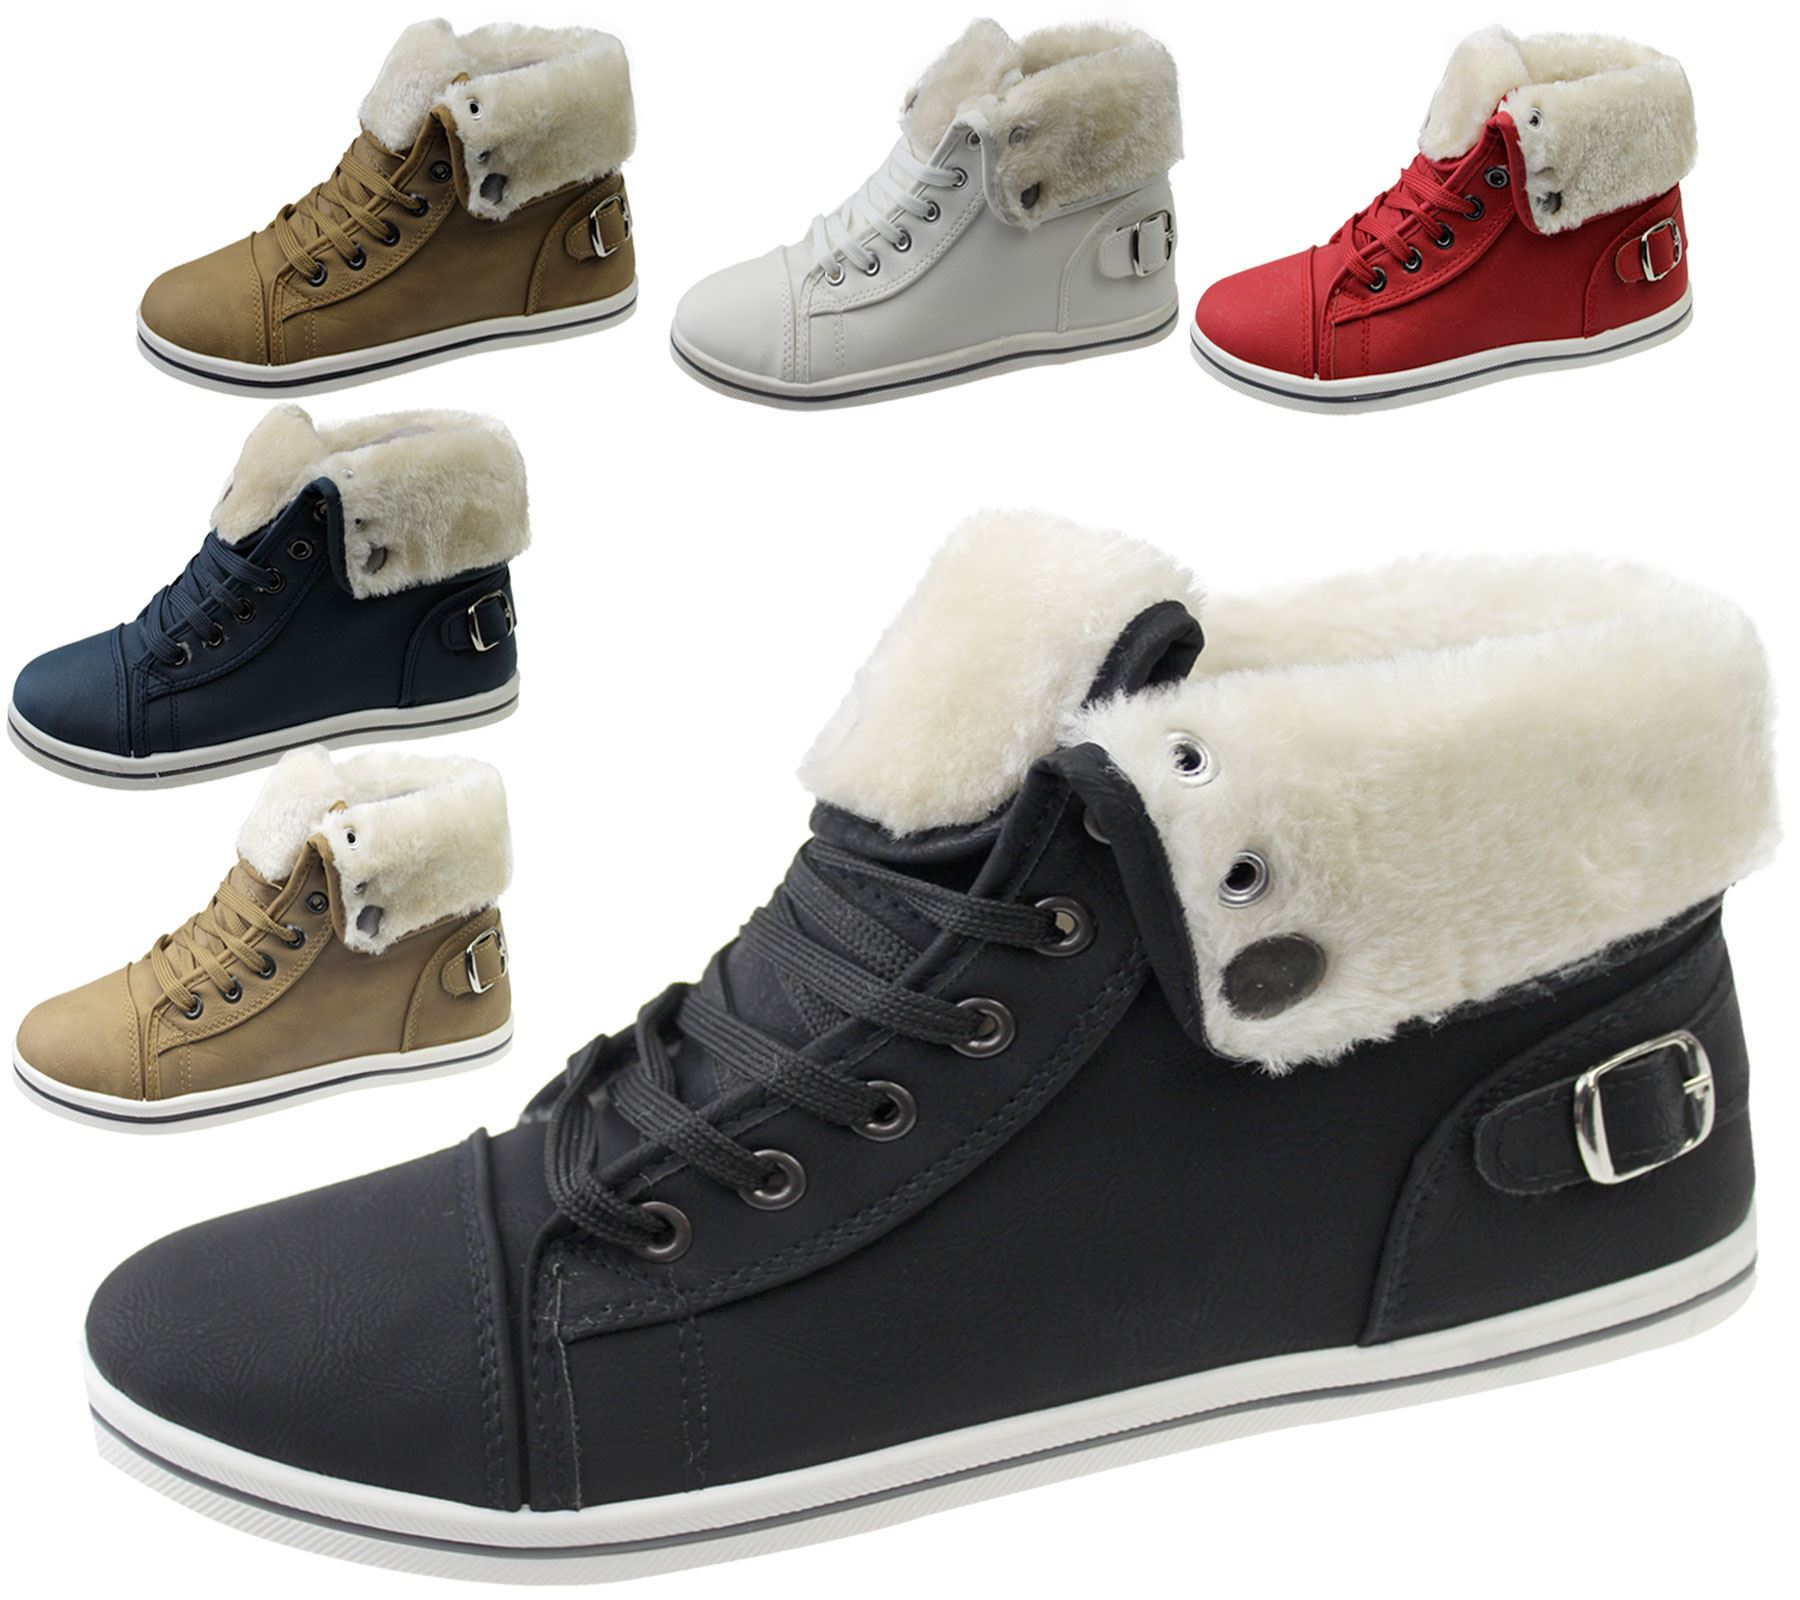 Girls-Boots-Womens-Warm-Lined-High-Top-Ankle-Trainer-Ladies-Winter-Shoes-Size miniatura 44